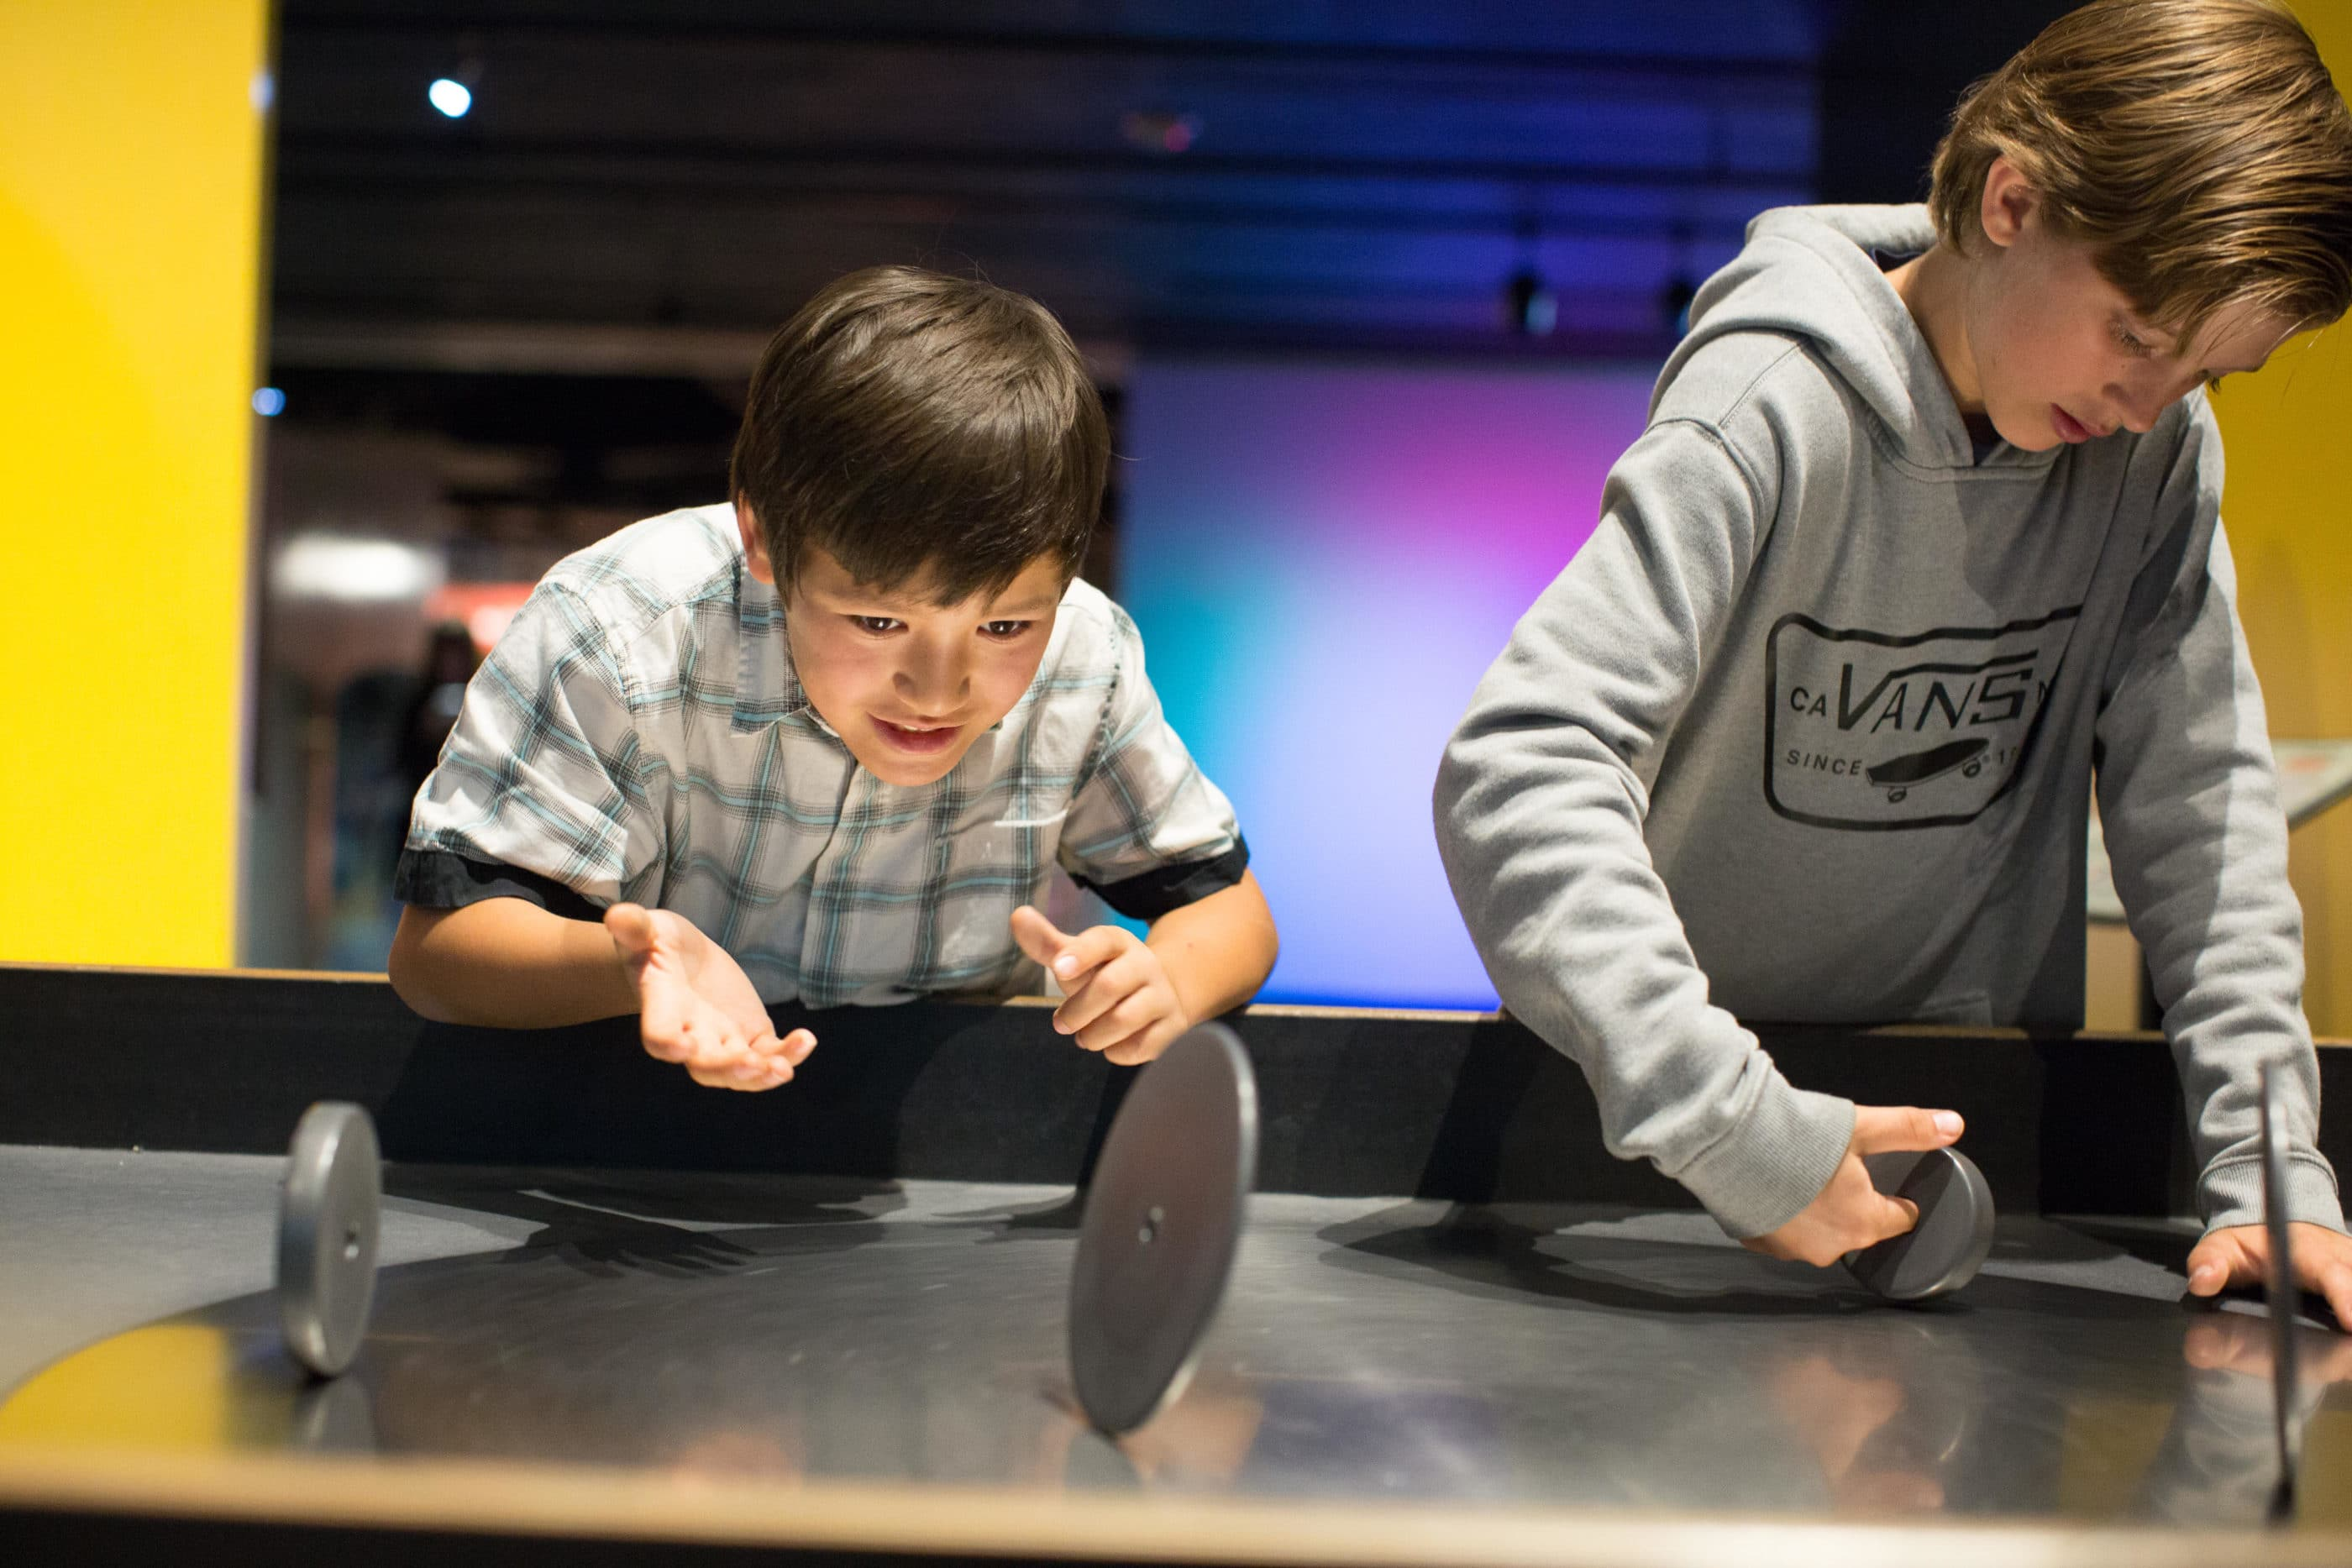 Best San Diego Children's Museums: Fleet Science Center